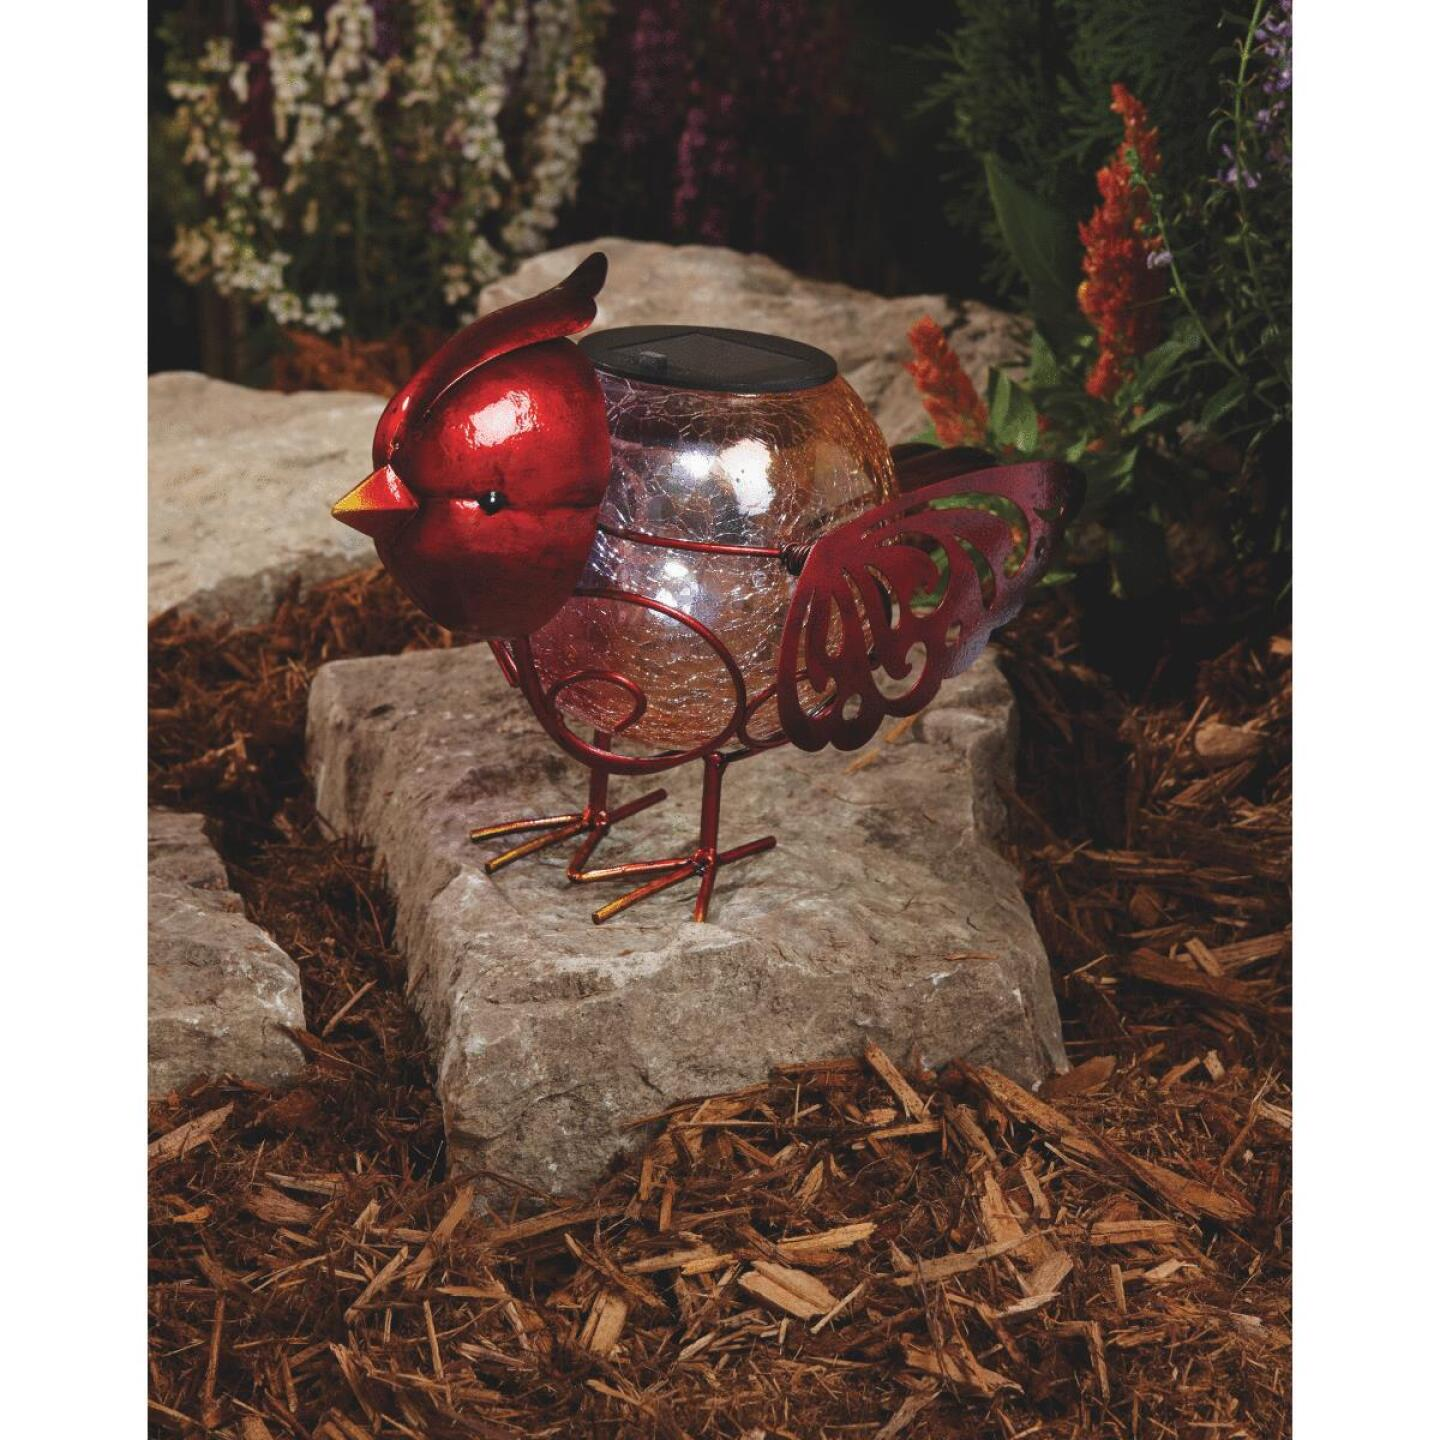 Outdoor Expressions 7.5 In. H. x 6 In. Dia. Bird Solar Light Image 5